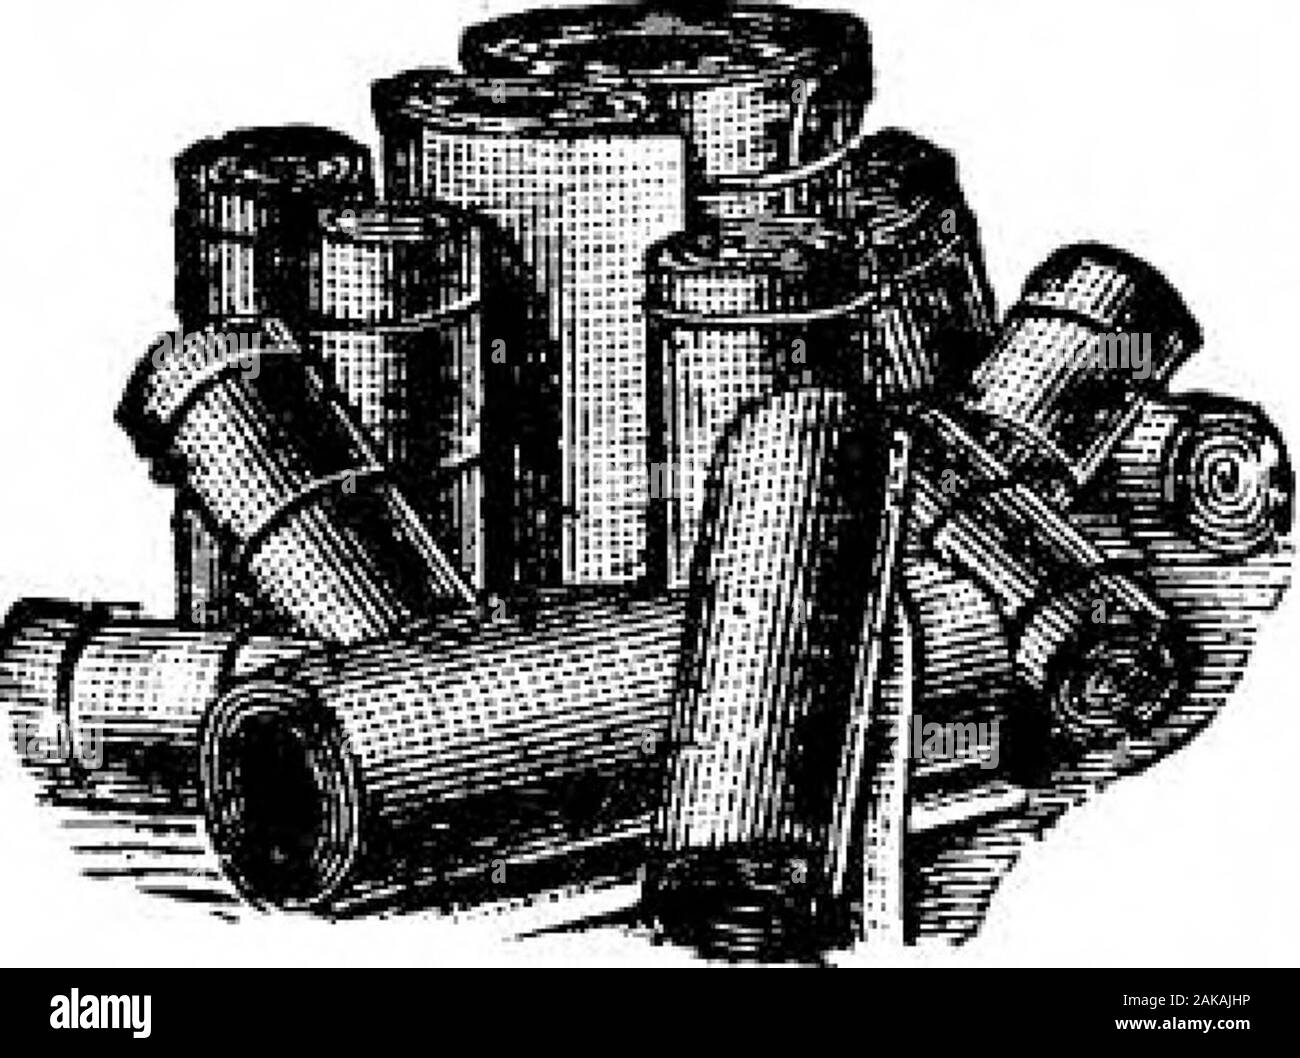 Scientific American Volume 65 Number 20 (November 1891) . PACKING, BELTING, HOSE, MATS, MATTING, ETC. EstalolistLOCi 1855. The Largest Manufacturers of Mechanical Kubber Goods in the World. THE GUTTA PERCHA AND RUBBER MFG. CO.. Para Building, 35 Warren St., New York. Chicago. San Francisco. Portland, Oregon. FROM ONE OF THE FOREMOST ENGINEERING FIRMS IN THE WORLD. After seven years with Thomson-Houston machinery, one hundred motors and abouttwenty dynamos, we have had the highest satisfaction and no difficulty whatever. In no singlecase have we had an armature to replace, and the cost of maint Stock Photo